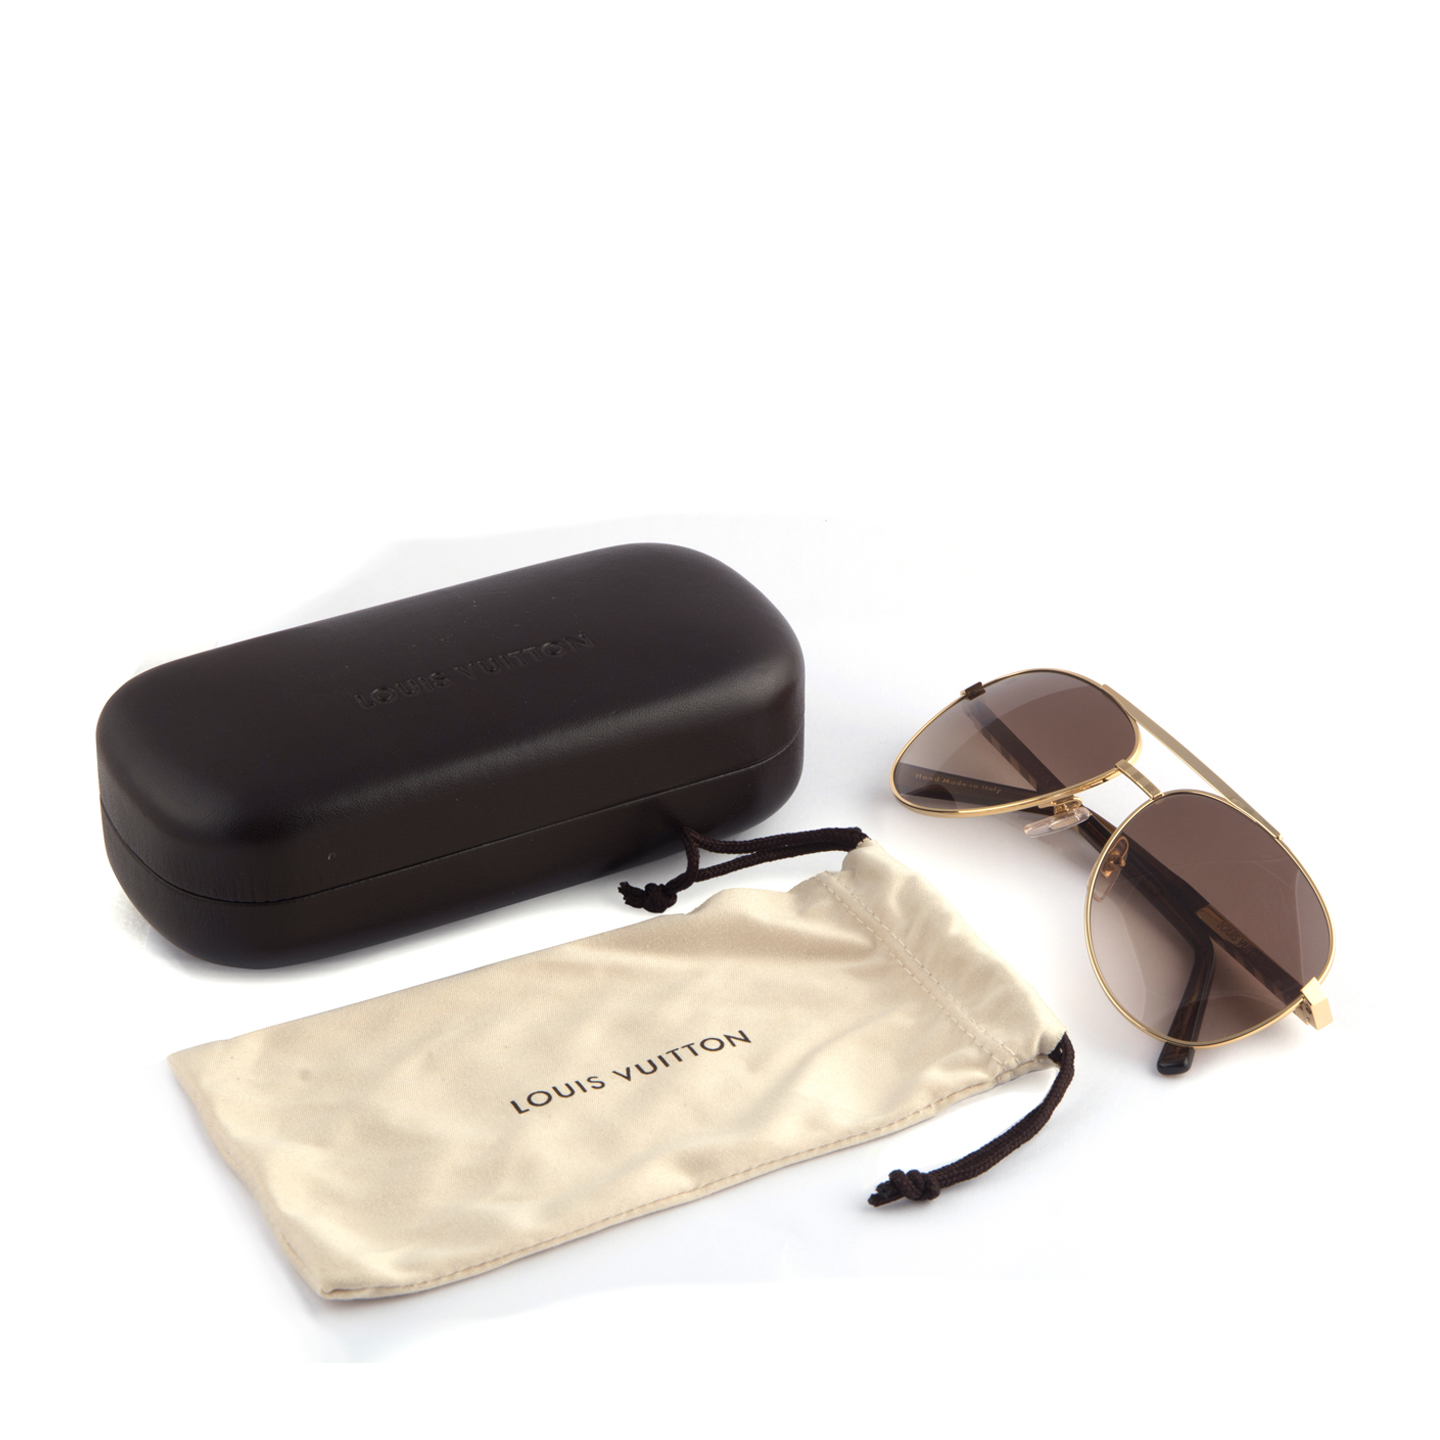 c0975bdd0c73 Louis Vuitton Attitude Pilote Sunglasses Z0339U Gold 05. Louis Vuitton  Attitude Sunglasses For Sale ...